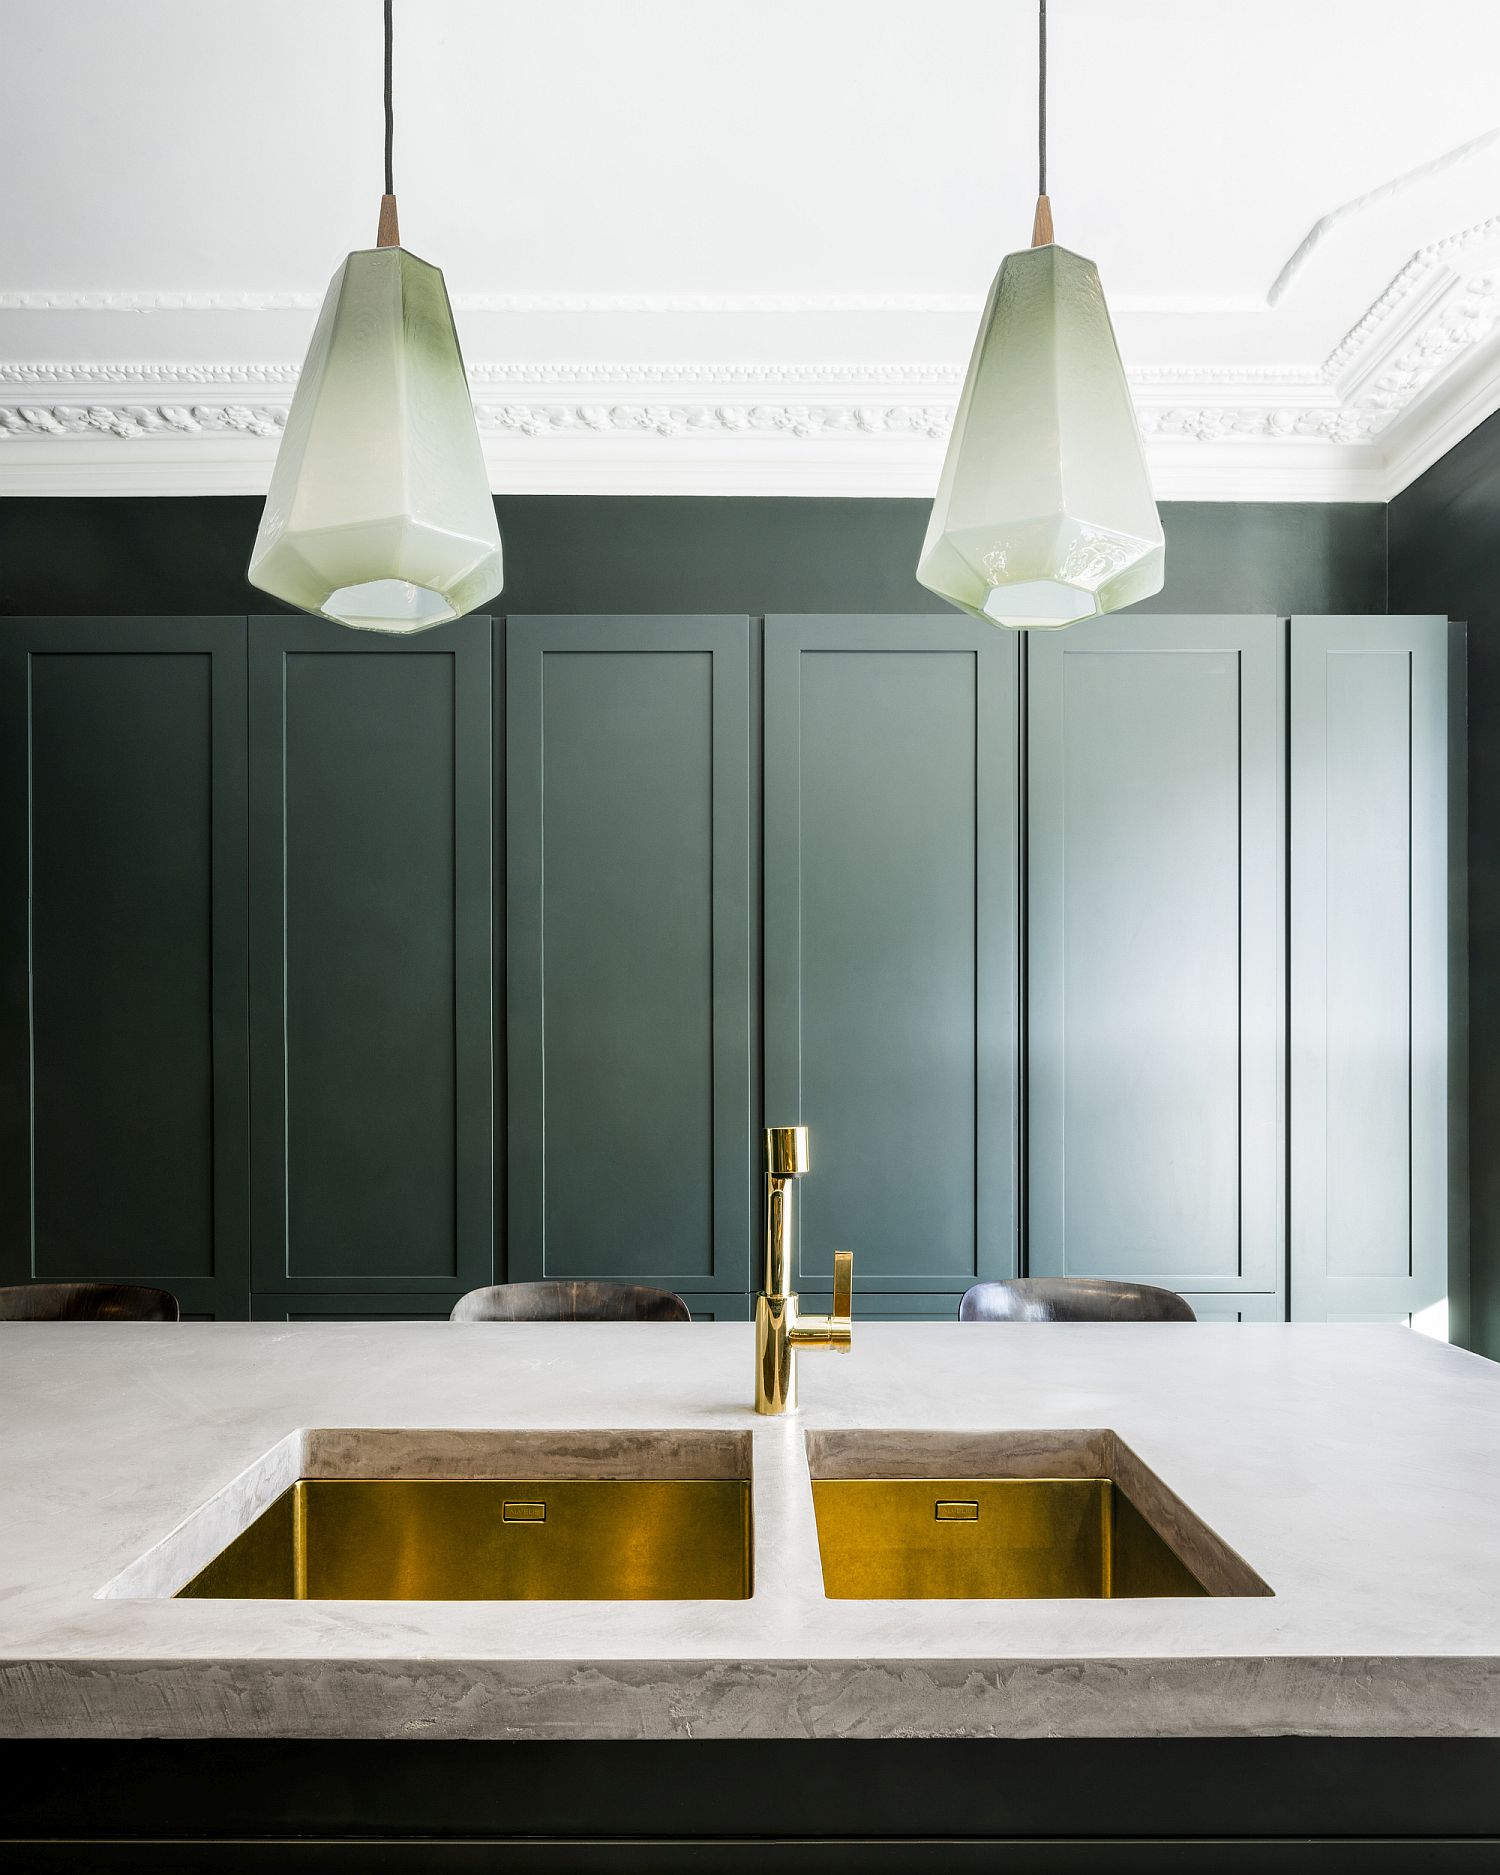 Kitchen fixtures add metallic glint to the polished interior